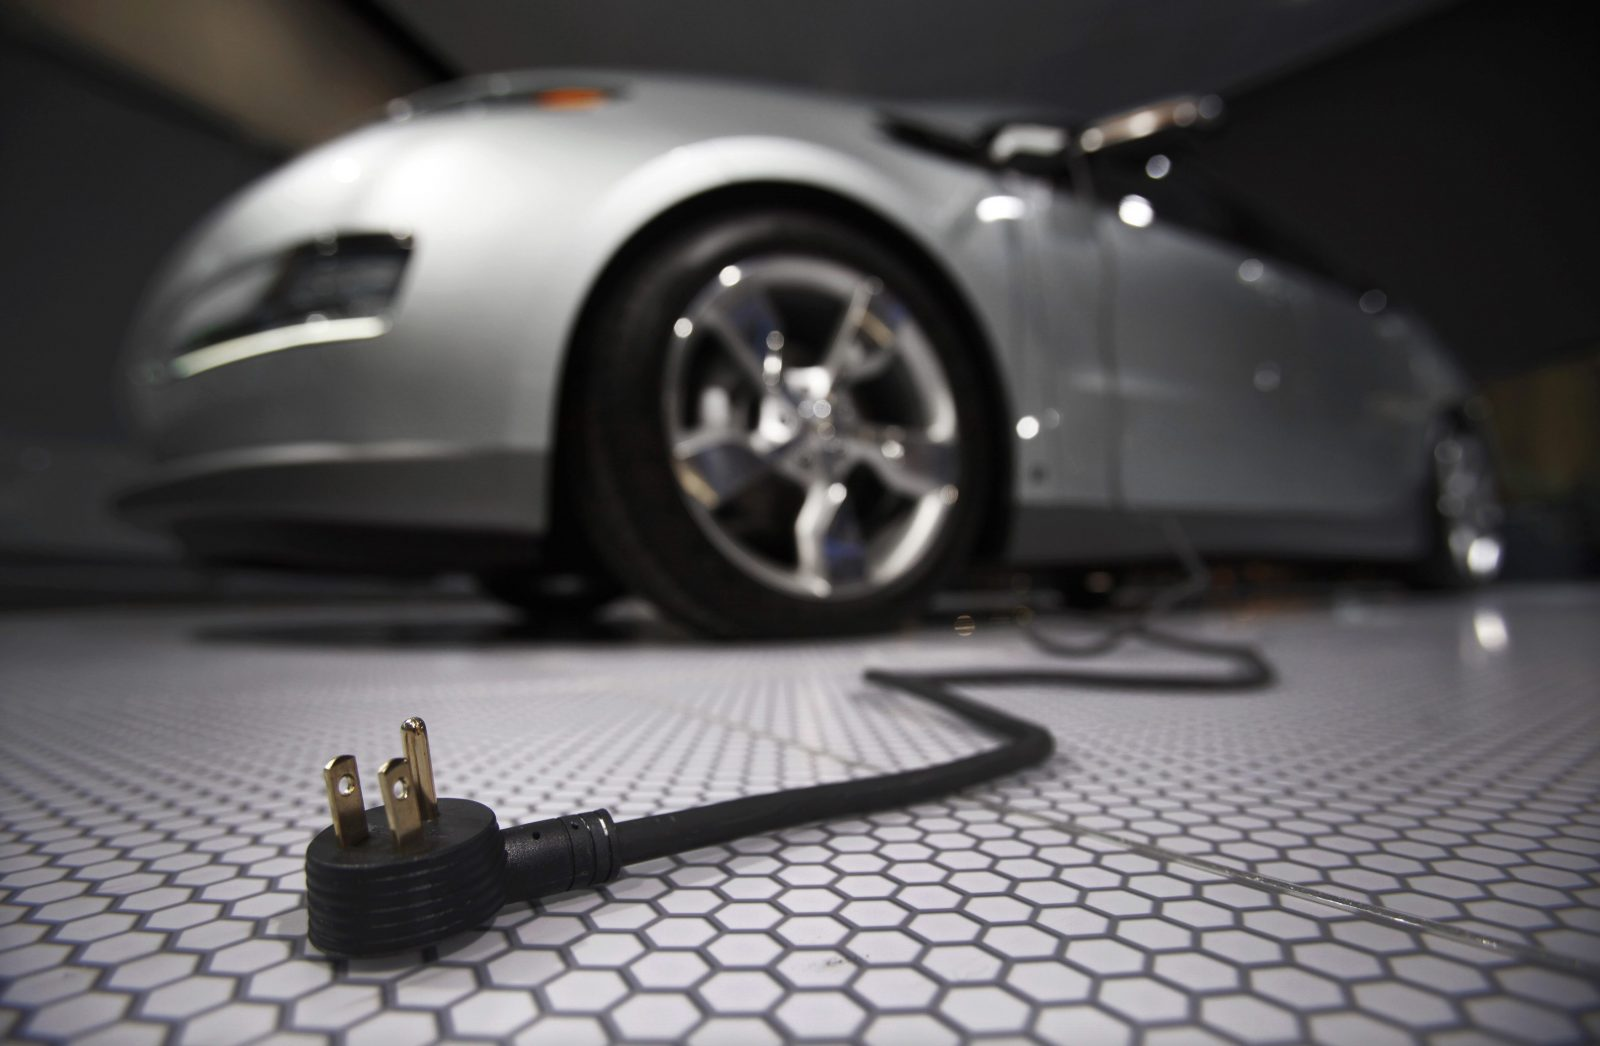 A plug is seen coming from the Chevrolet Volt electric car during the North American International Auto Show in Detroit, Michigan January 13, 2009.